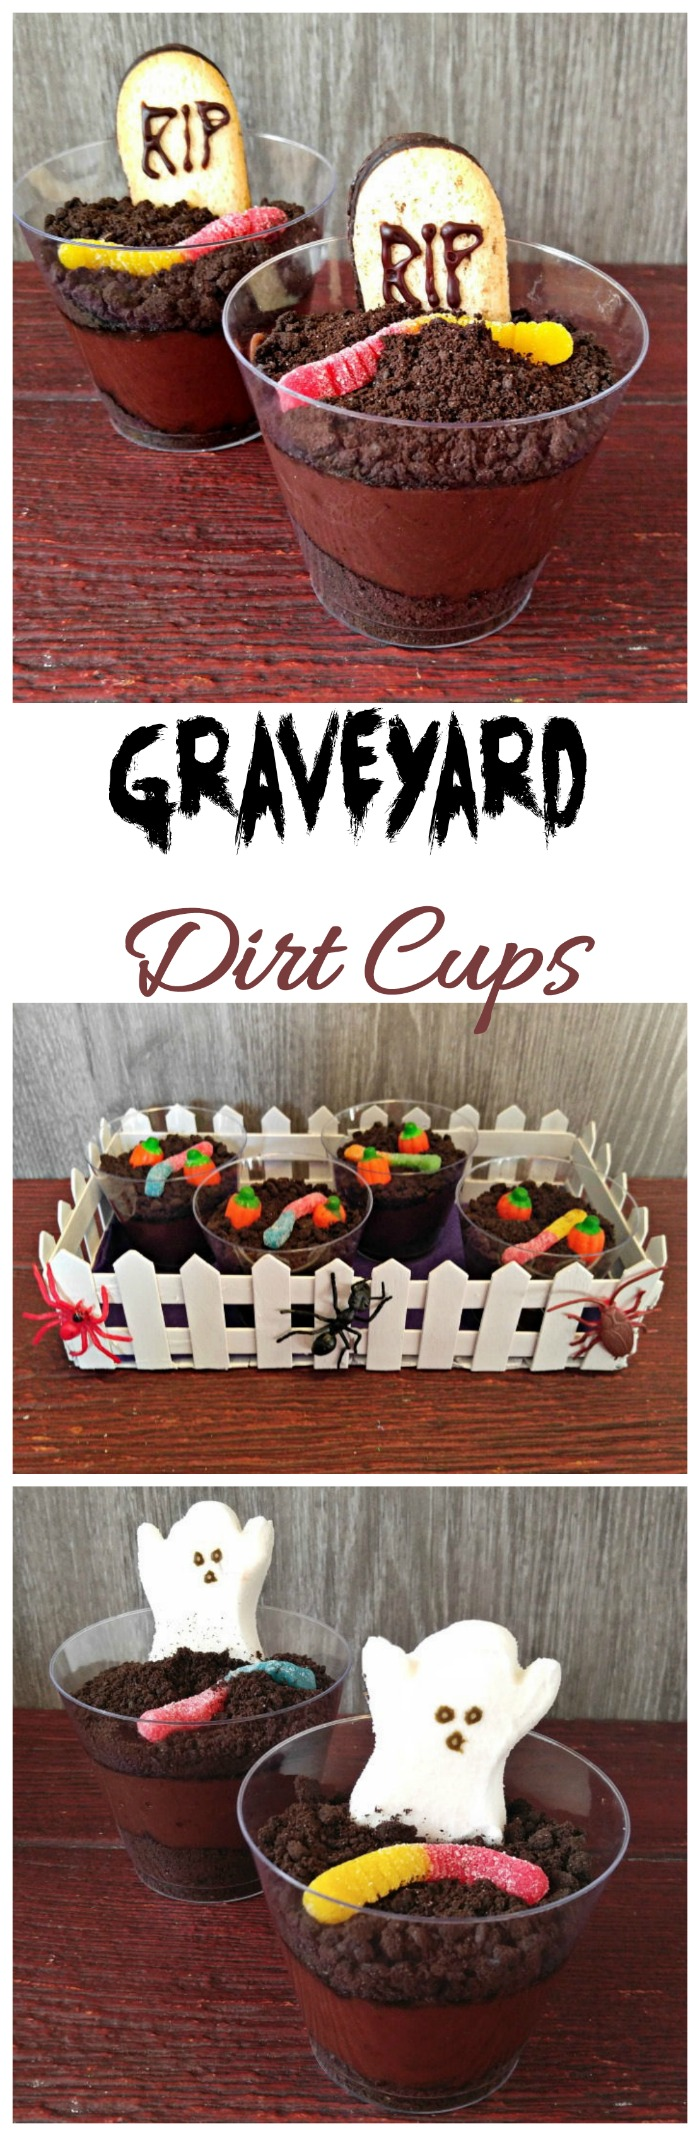 These Halloween dirt cups are spooky and tasty and such fun to make. #dirtcups #halloweentreats